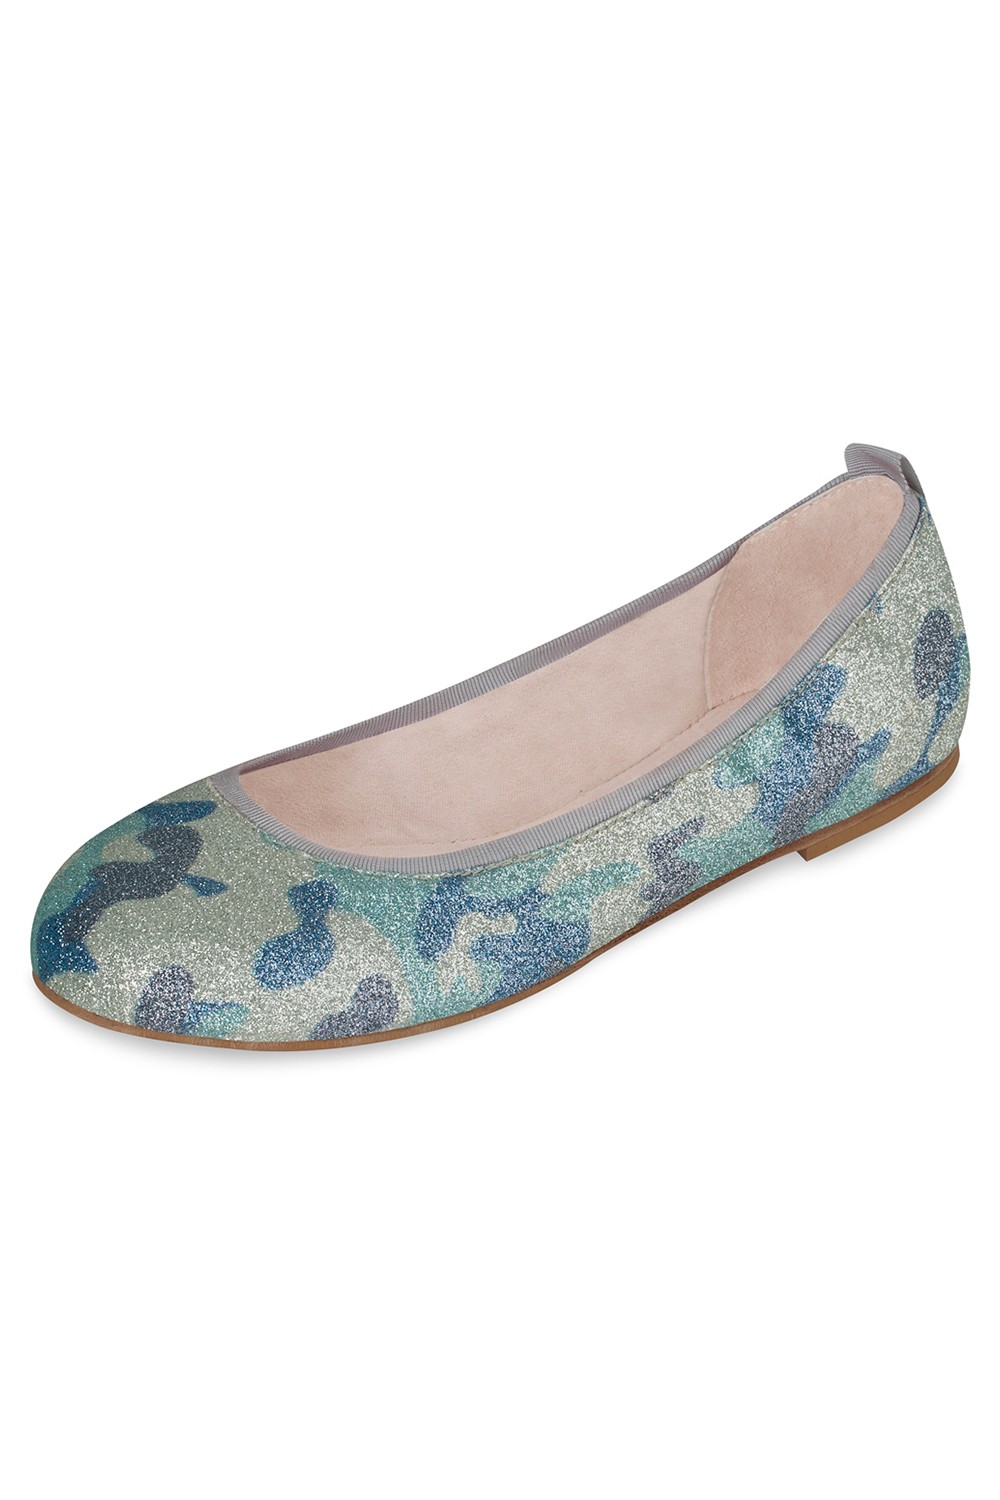 Camouflage - Girls Girls Fashion Shoes